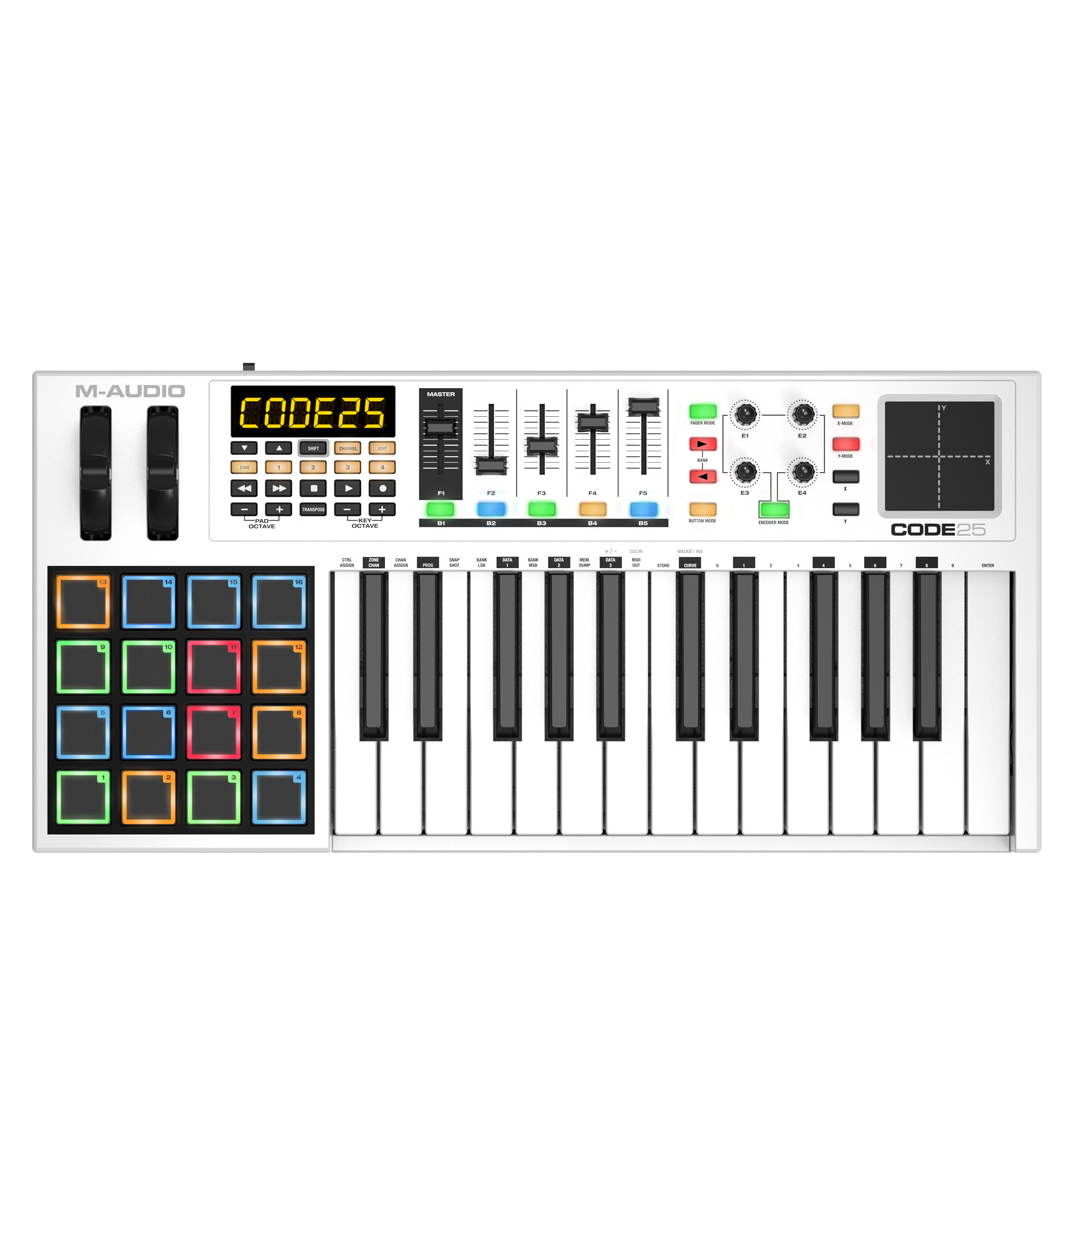 Buy M-Audio CODE25 USB MIDI Controller Melody House